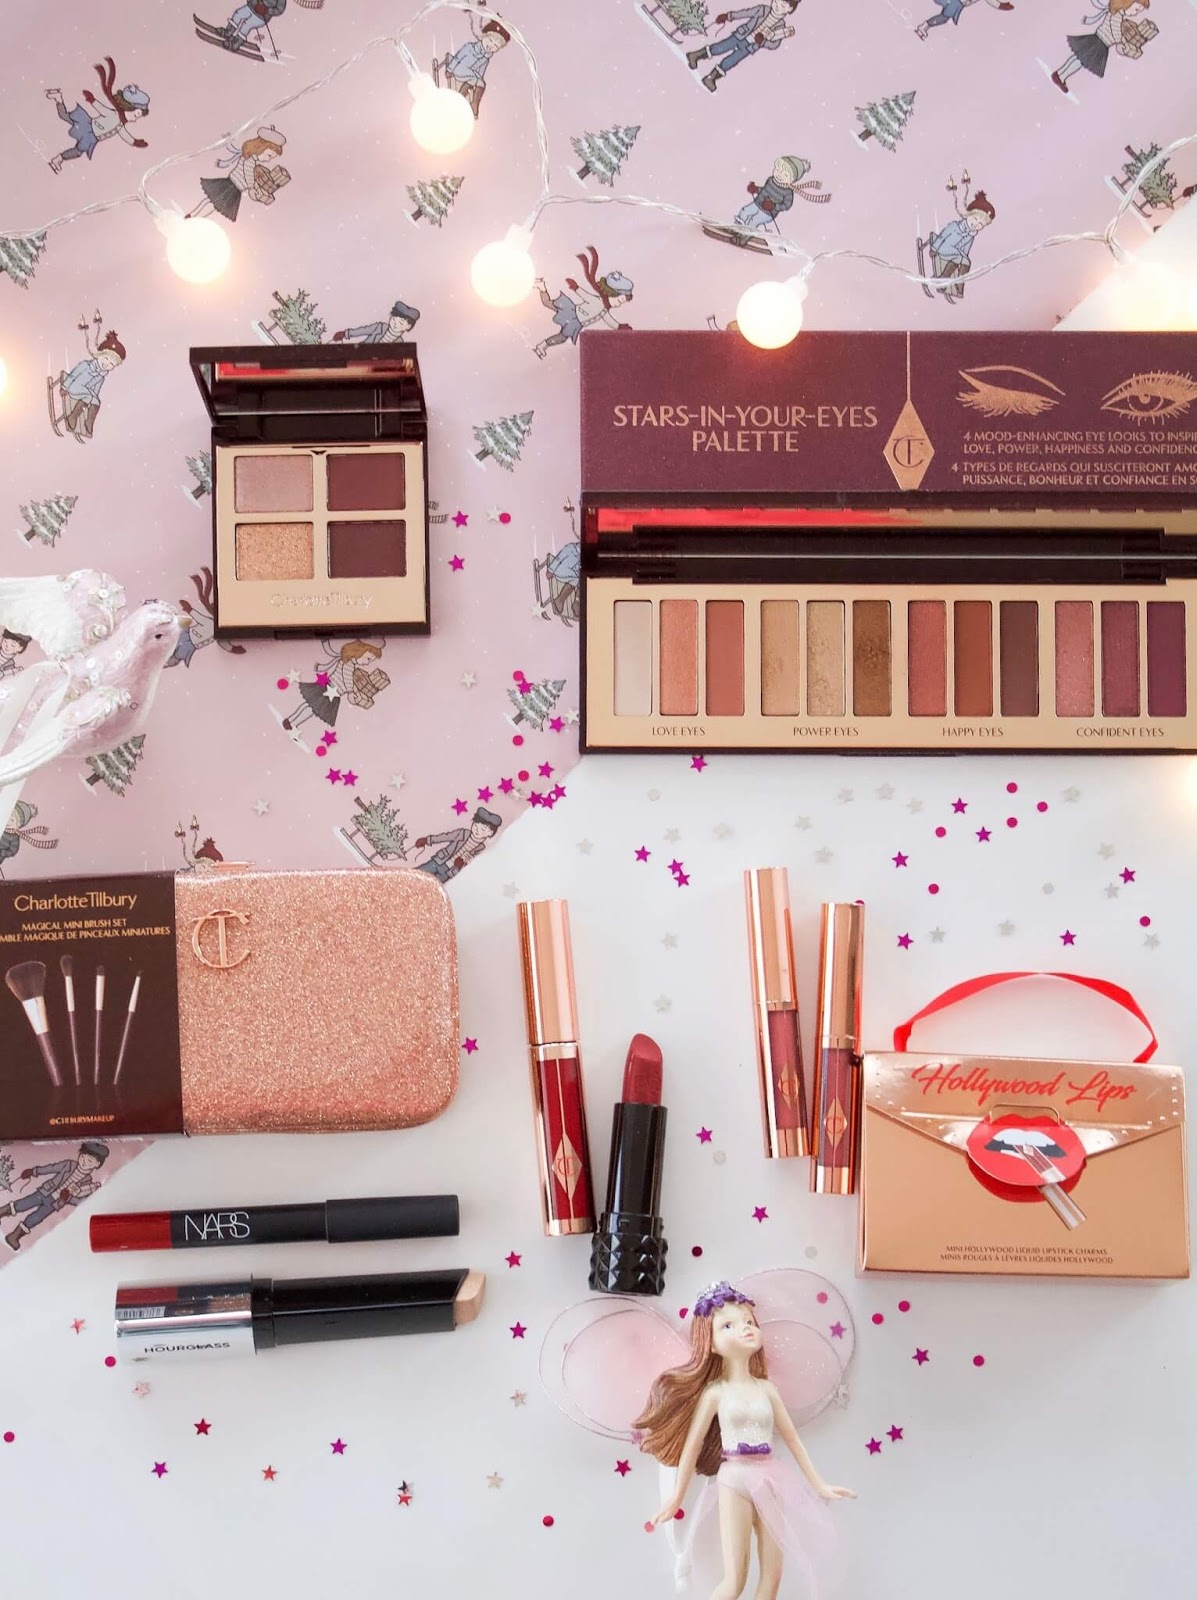 Festive beauty products